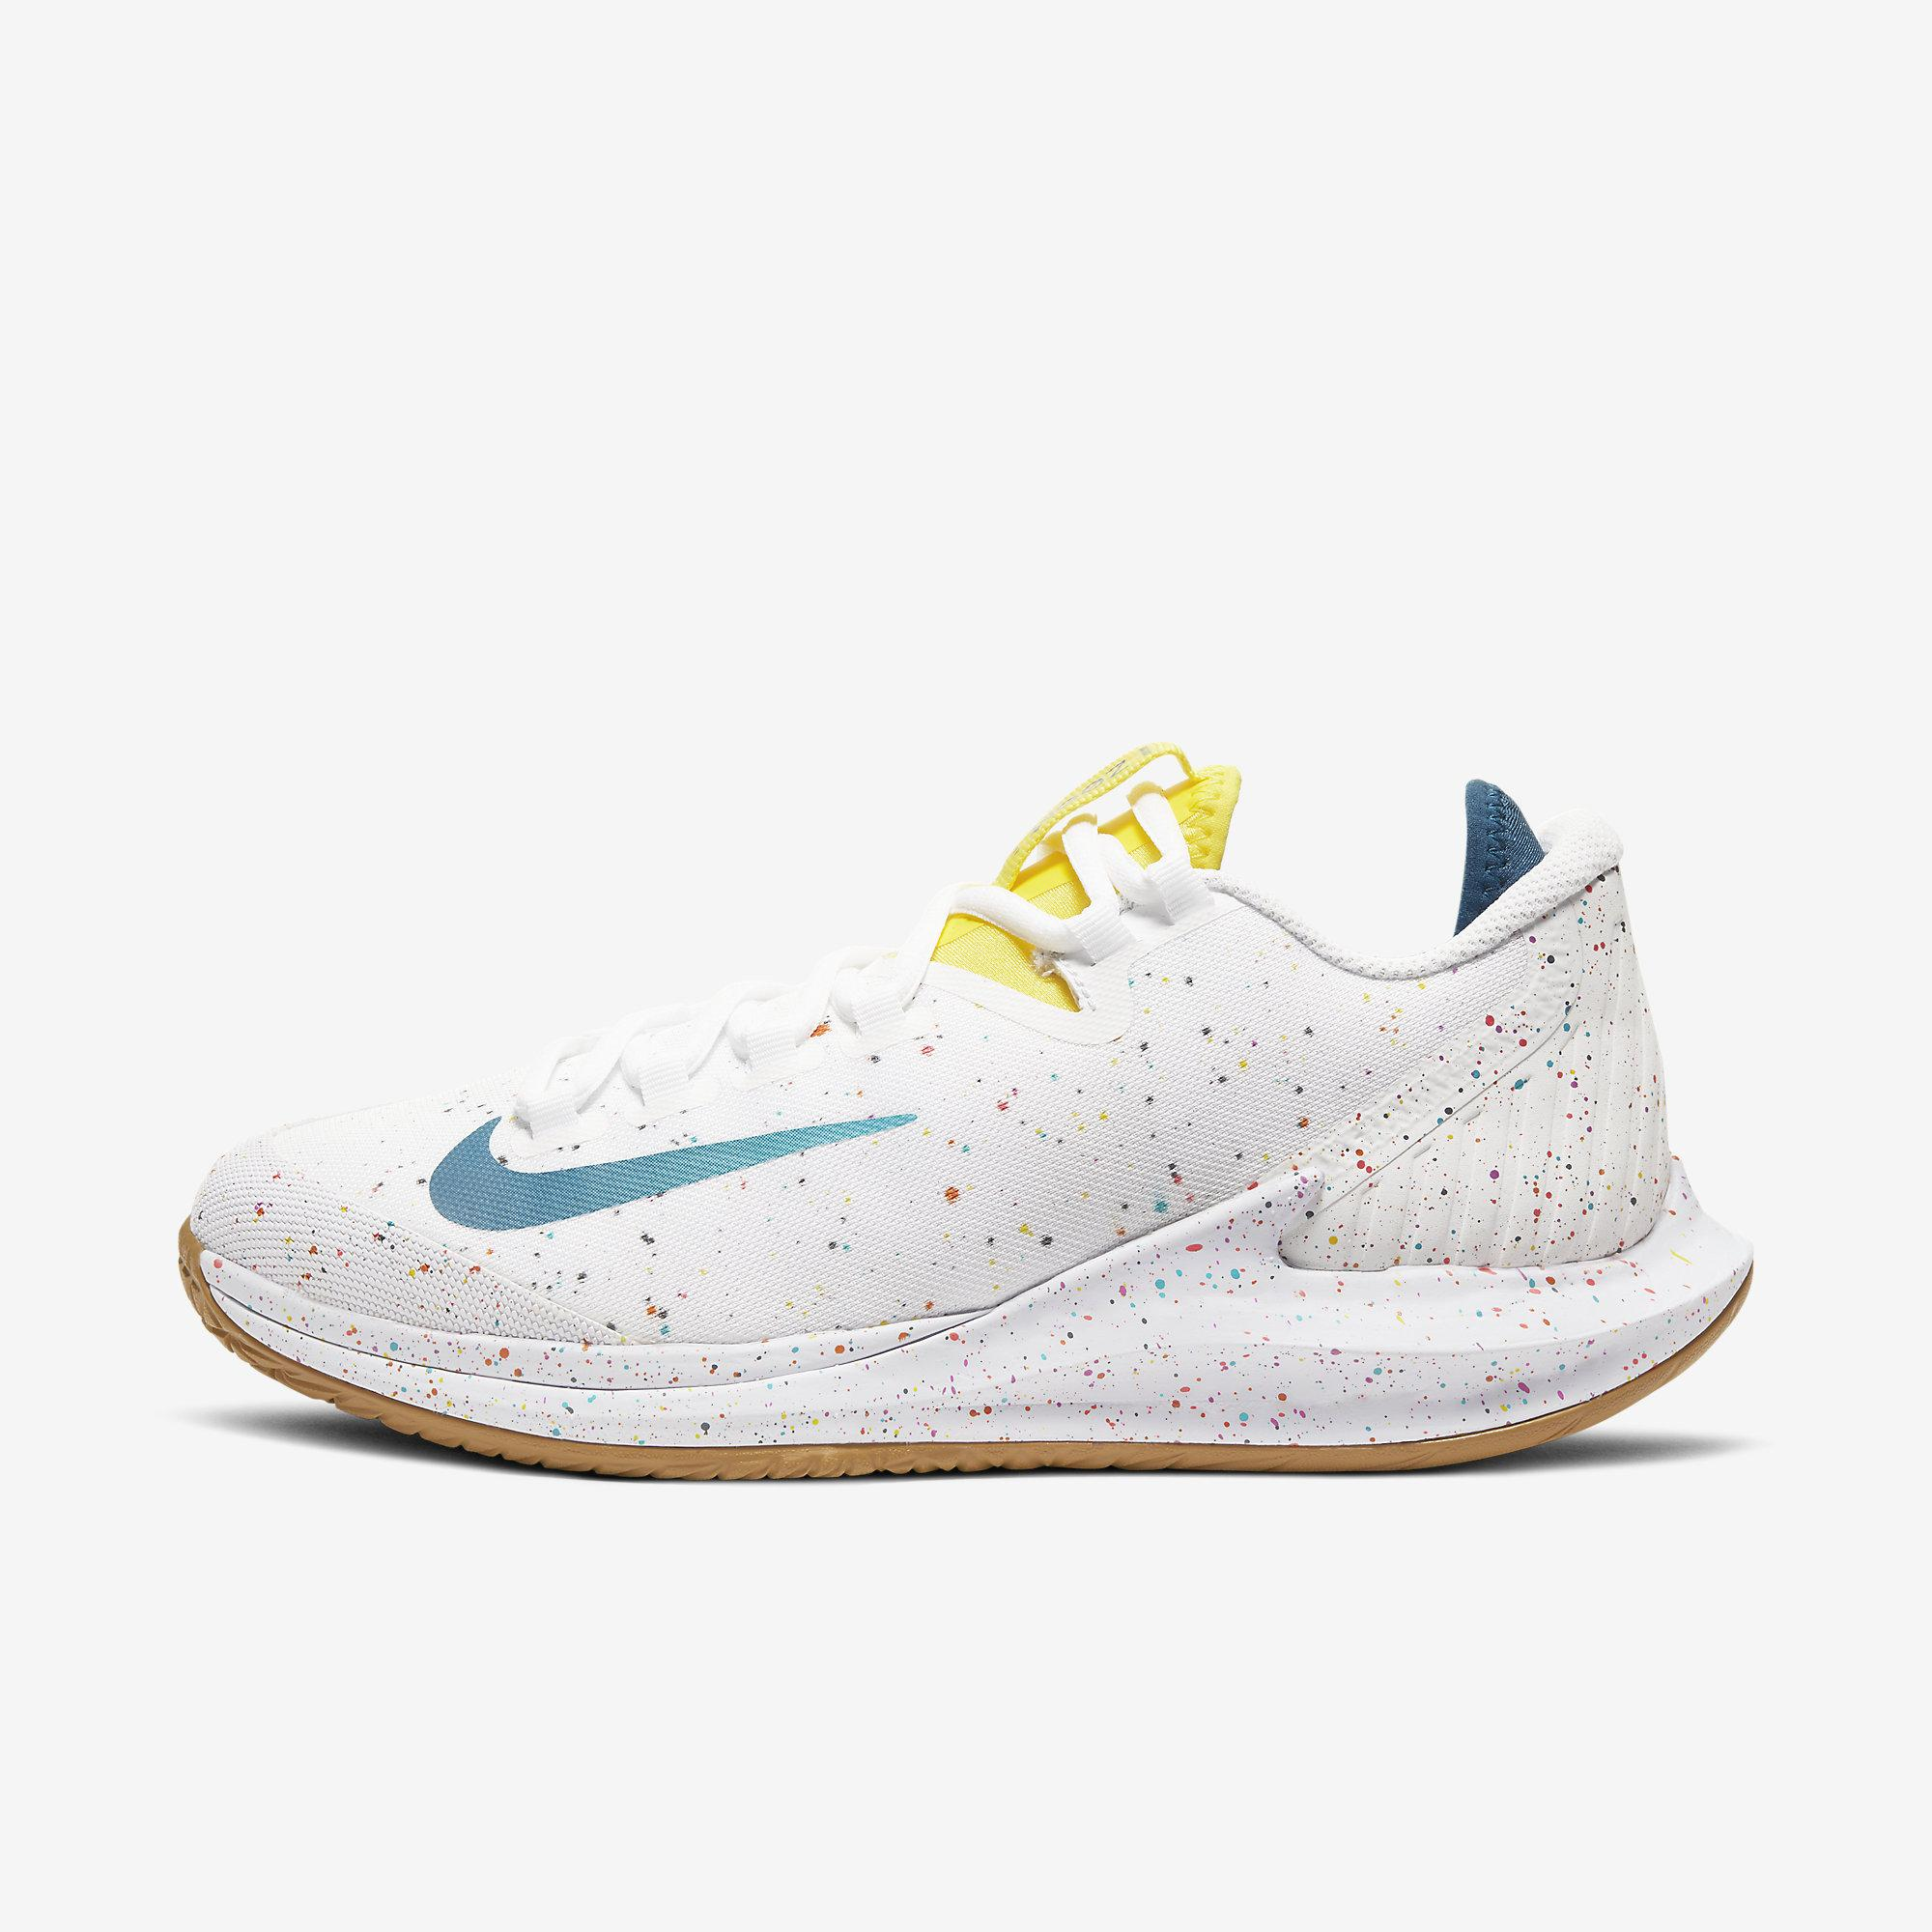 Nike Zoom Tennis Shoes Womens Shop Clothing Shoes Online